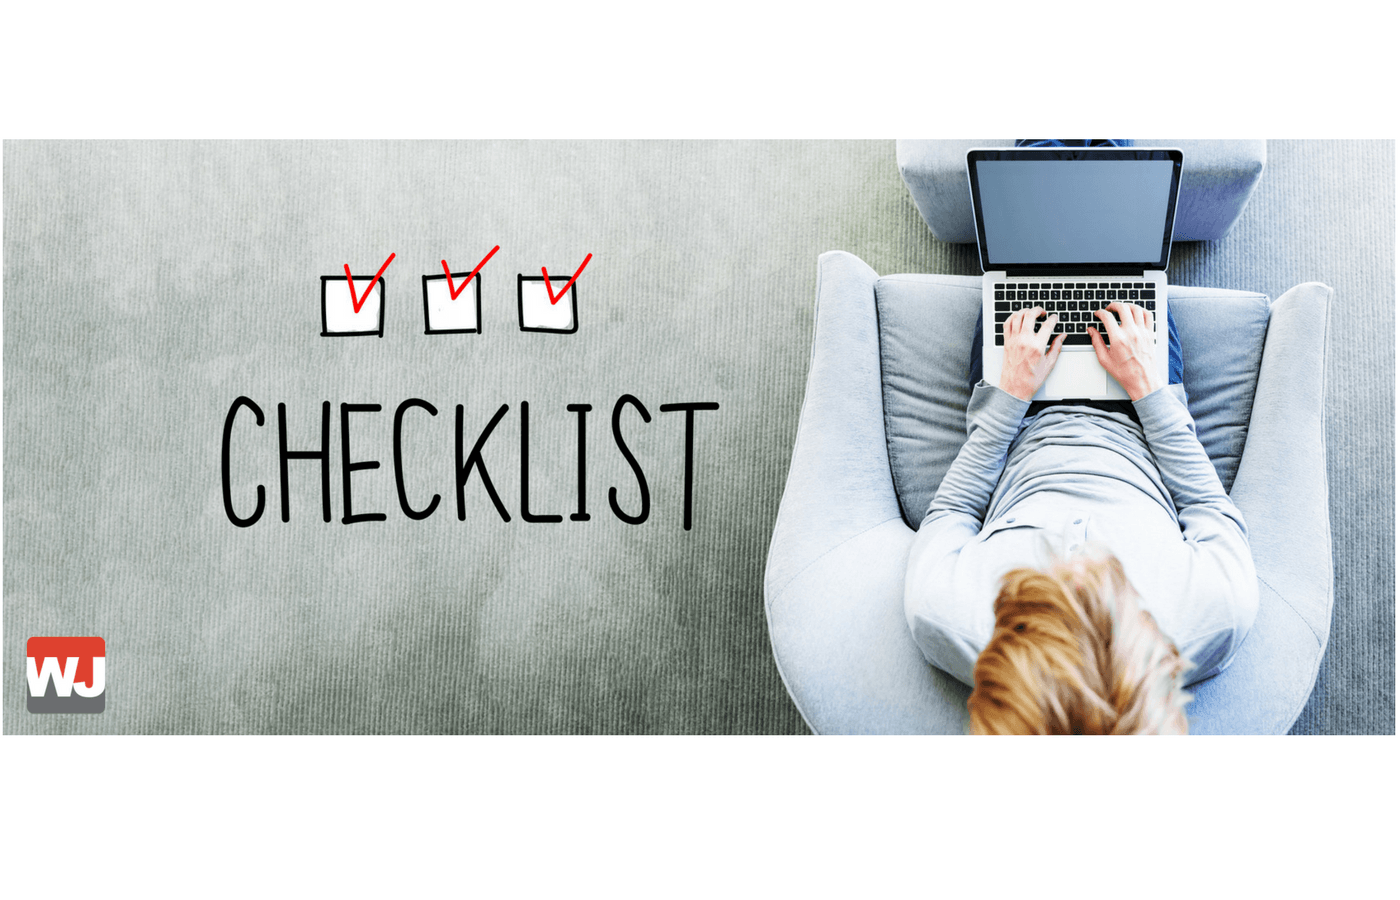 Checklists allow you to achieve more profit!